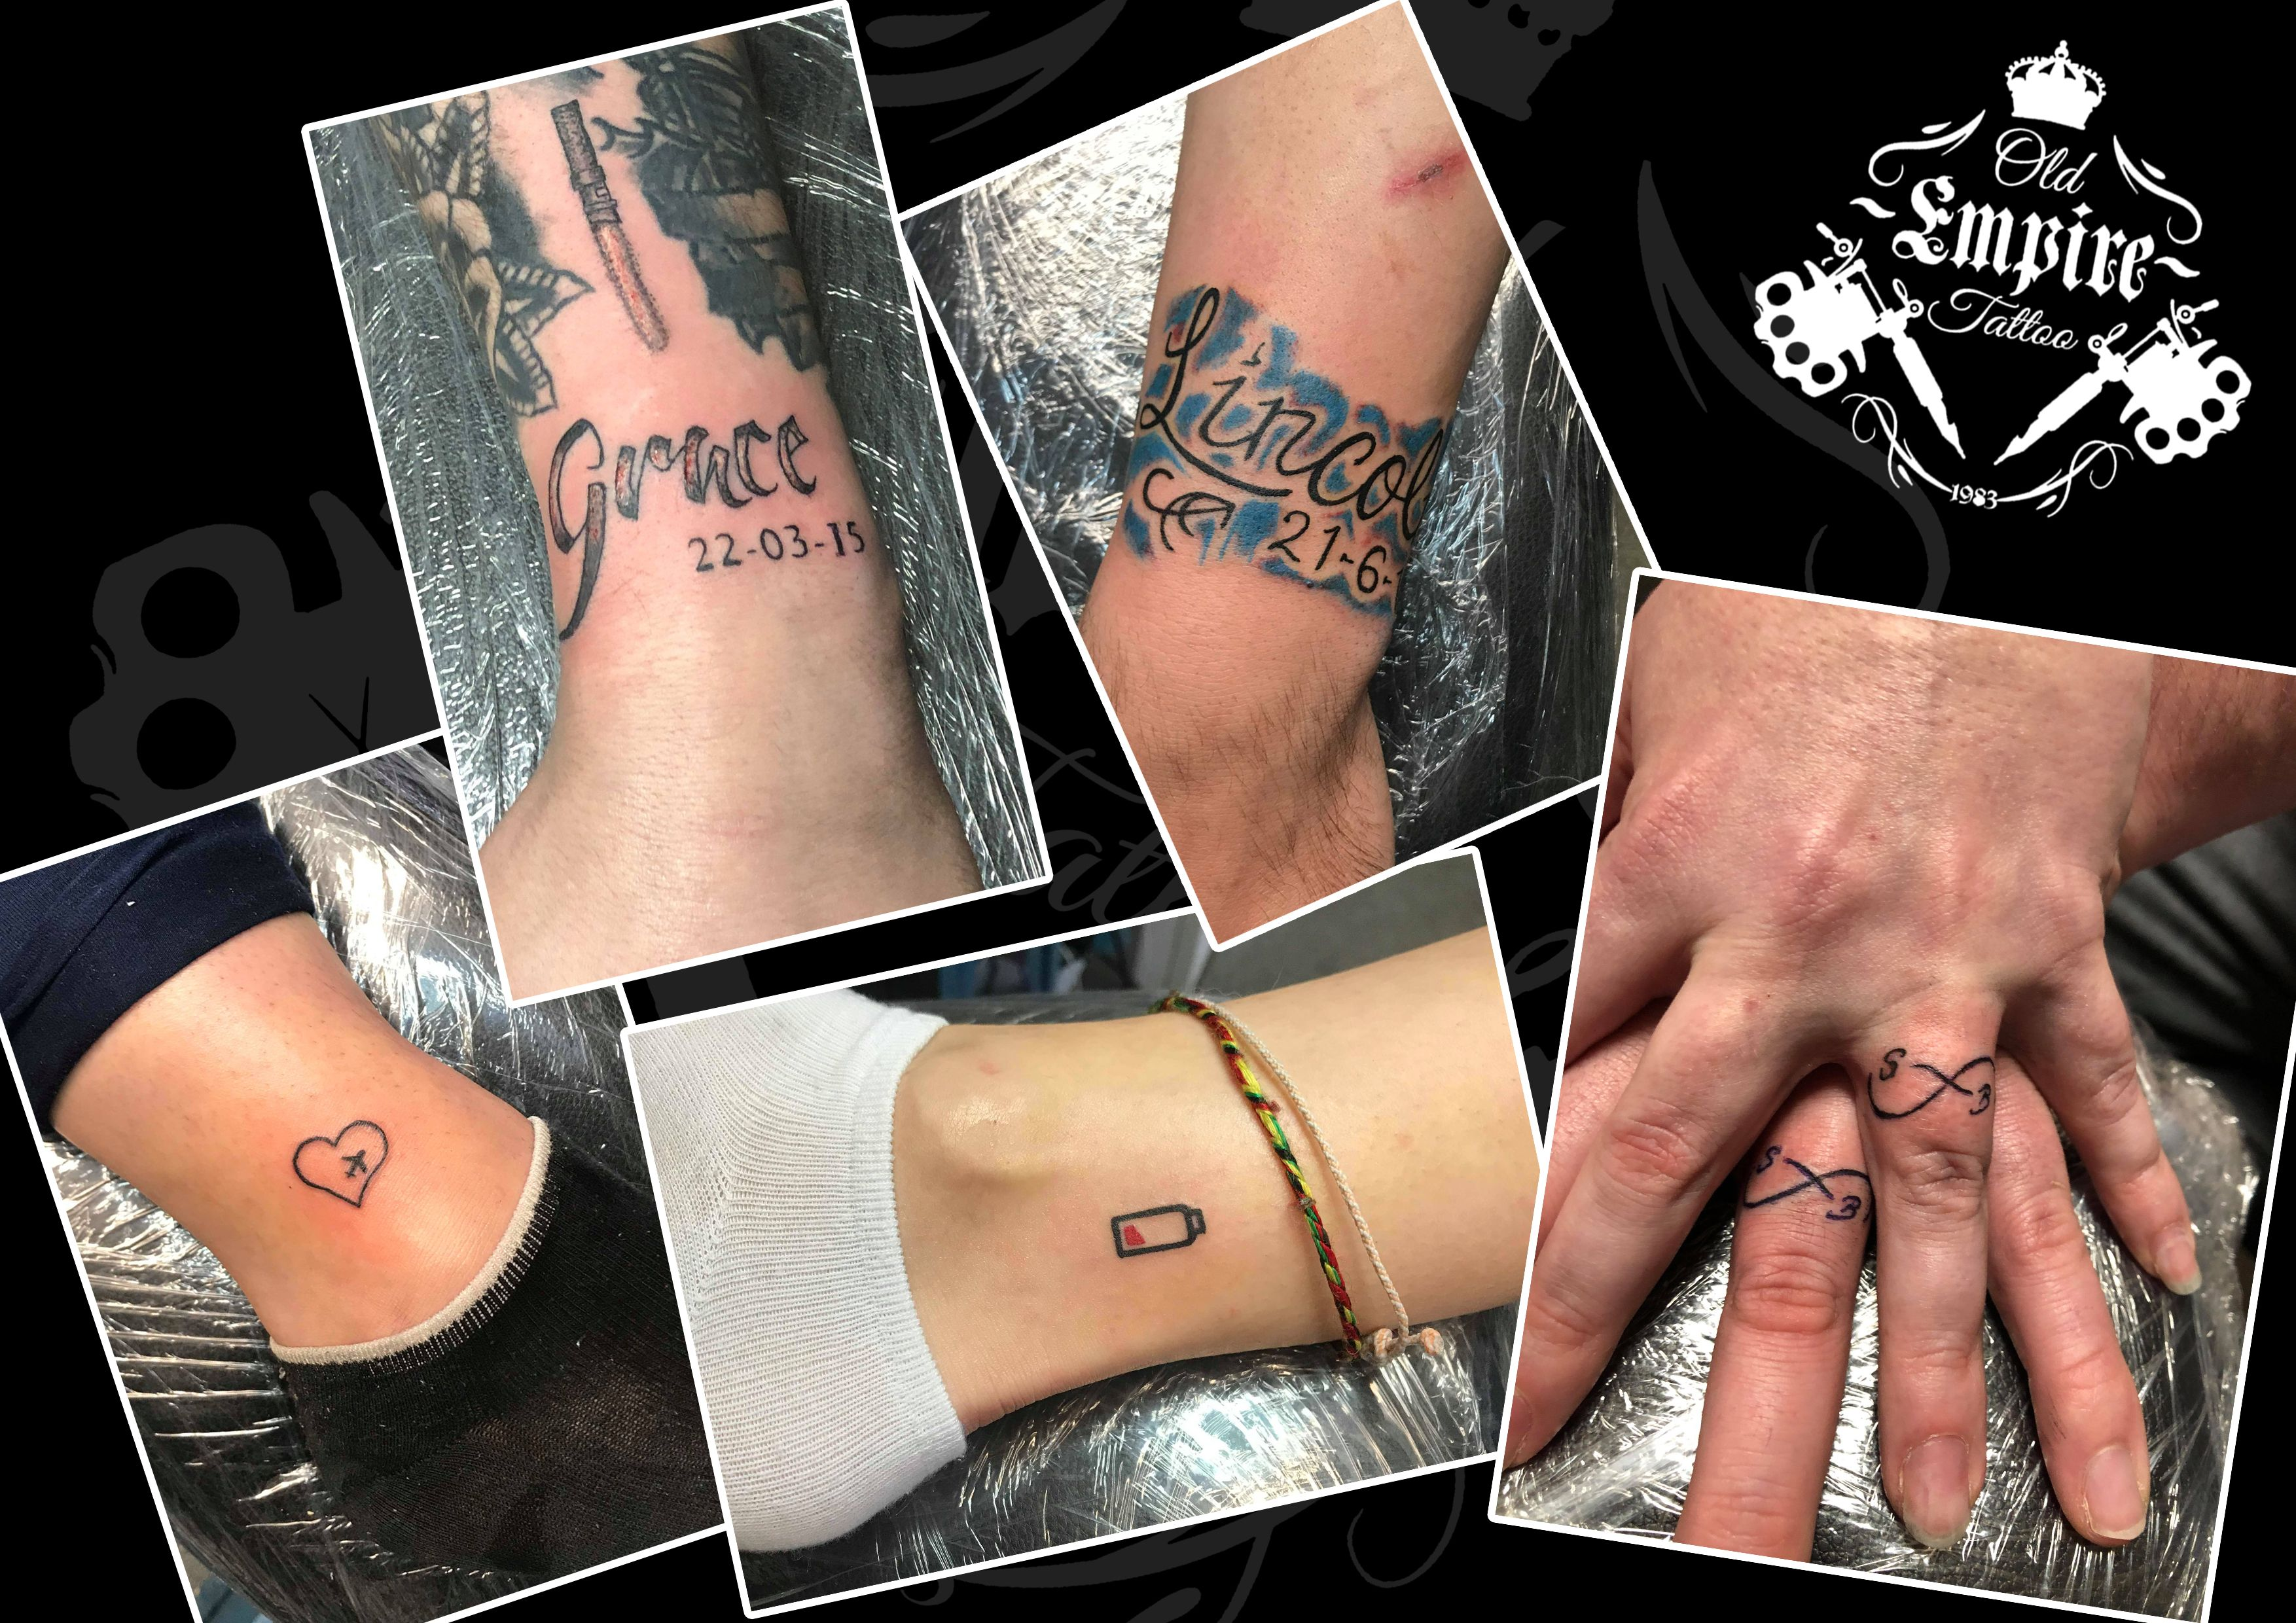 It's #TinyTats Tuesday at #OldEmpireTattoo #WristTattoo #BlackAndGrey #Script #FreeHand #Family #JetSetter #Heart #AnkleTattoo #Friendship #Battery #Funky #Colour #RingFinger #CouplesTattoo #Love #Infinity #Matching #FingerTattoo #AlwaysOriginal #Salford #Walkden #Coils4Life